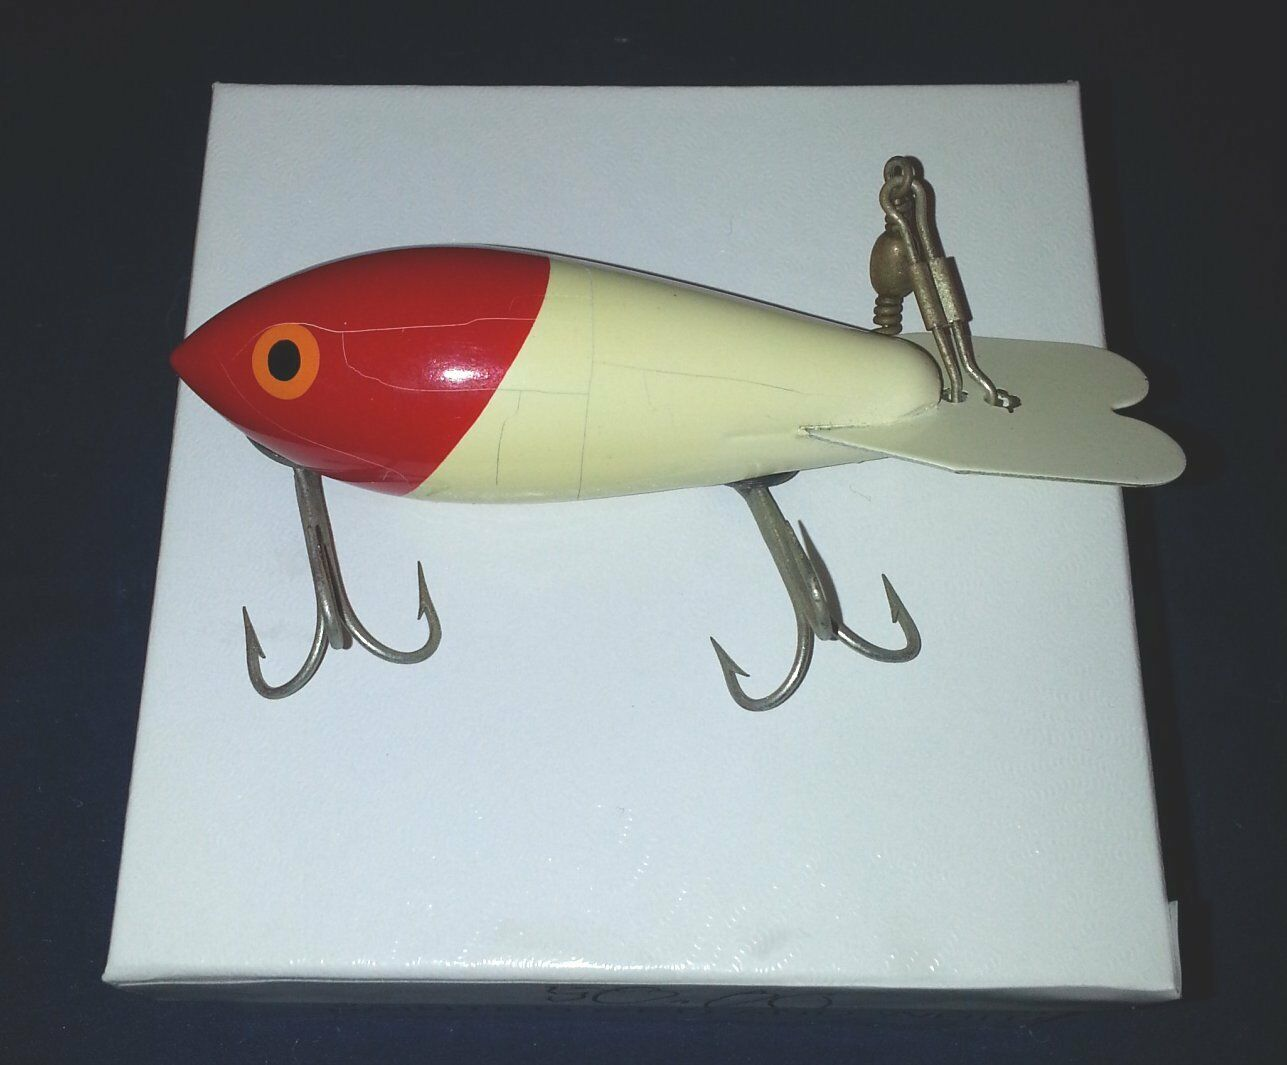 VINTAGE WOOD  FISHING LURE 3 3 4 INCHES METAL TAIL PAINTED RED WHITE excellent